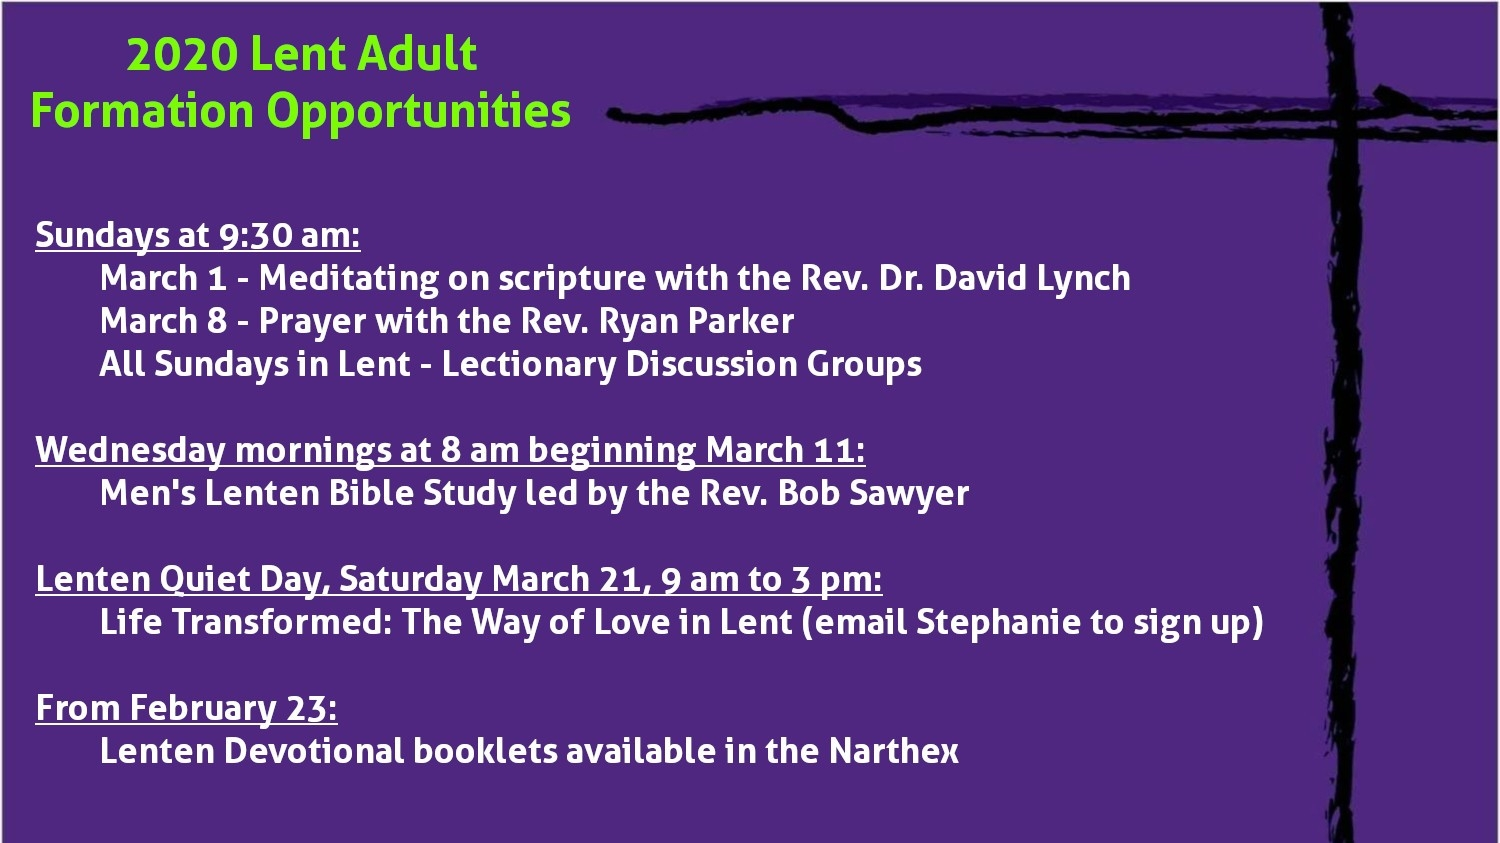 2020 Lent Adult Formation Opportunities - Church Of The Nativity  Lectionary For Lent 2020